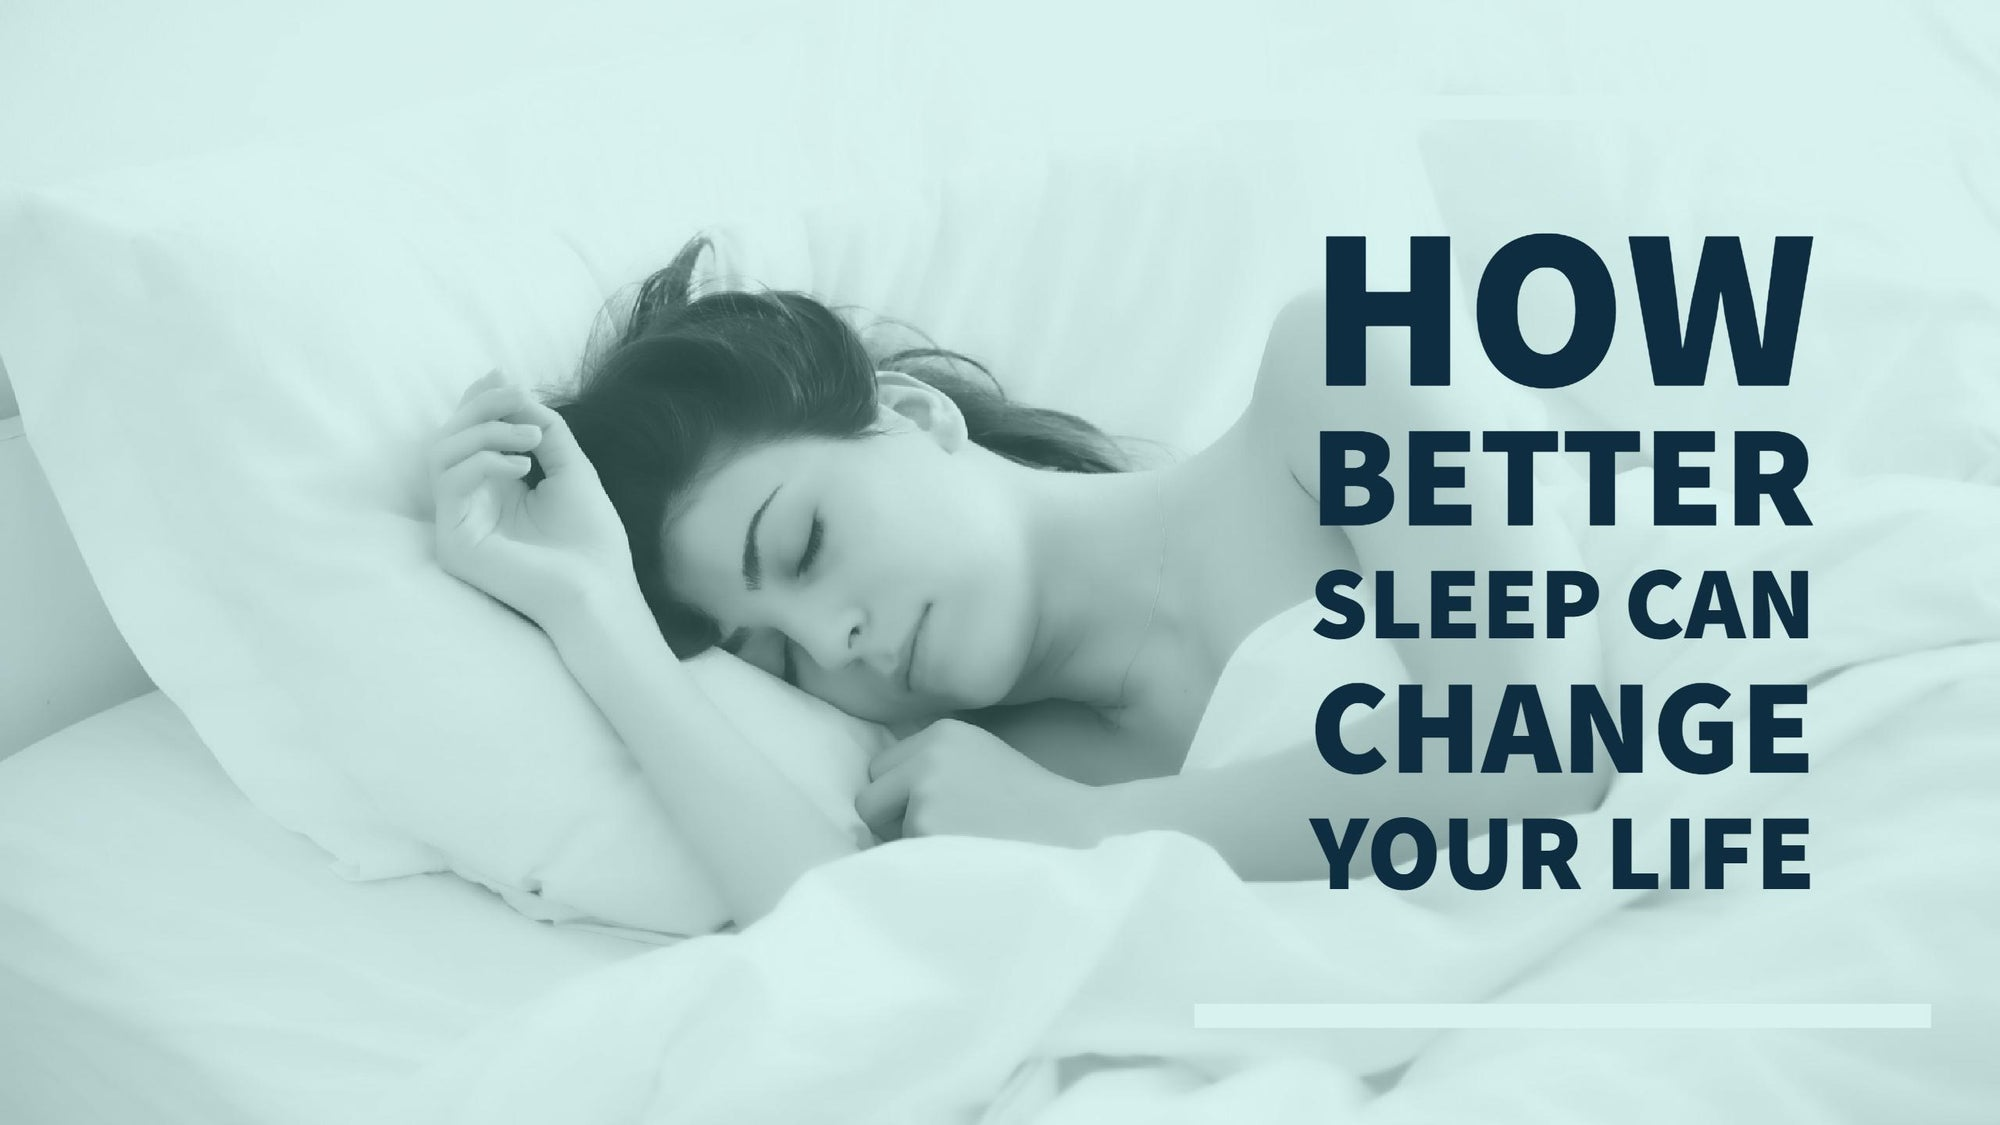 How Better Sleep Can Change Your Life